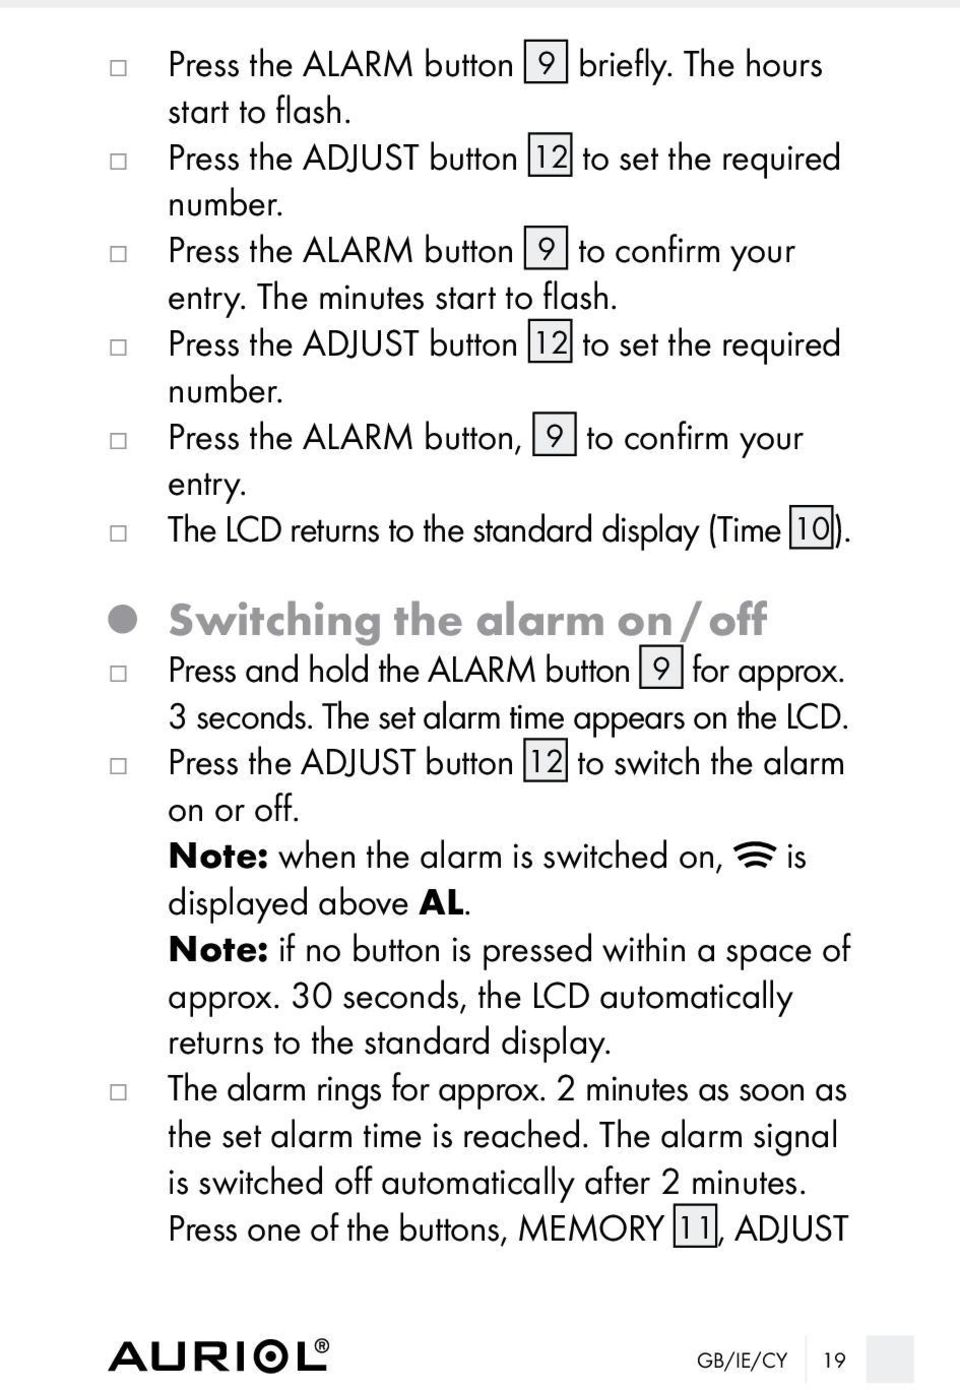 Switching the alarm on / off Press and hold the ALARM button 9 for approx. 3 seconds. The set alarm time appears on the LCD. Press the ADJUST button 12 to switch the alarm on or off.